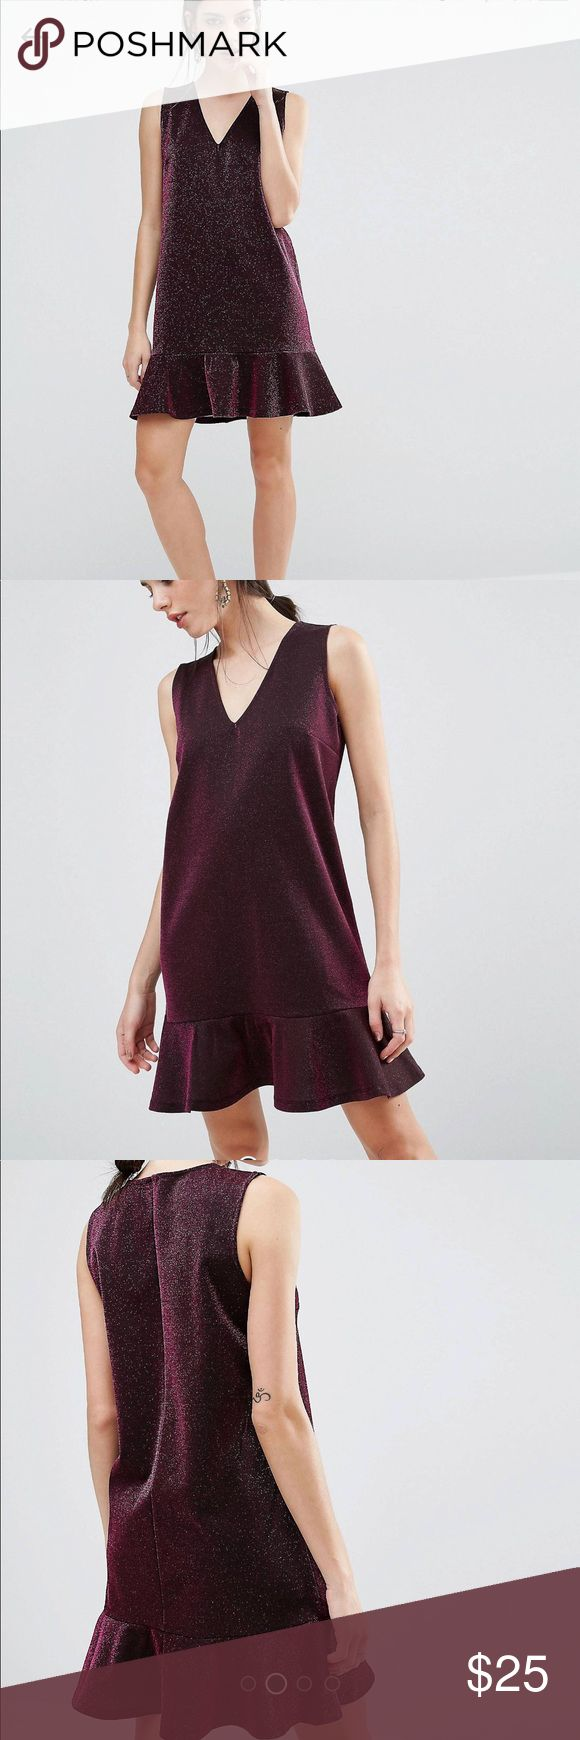 ASOS Petite Metallic dress with Hem ASOS Petite, brand new, never worn. - US 4 - burgandy/dark red, with shimmering - hem at the end of thendress - material is flexible  * sizing accuracy can check ASOS sizing guide online. * clothing's colouring maybe different due to lighting. * all packaging will be photographed, to guarantee items deliver as described, what you buy is what you get! ASOS Petite Dresses